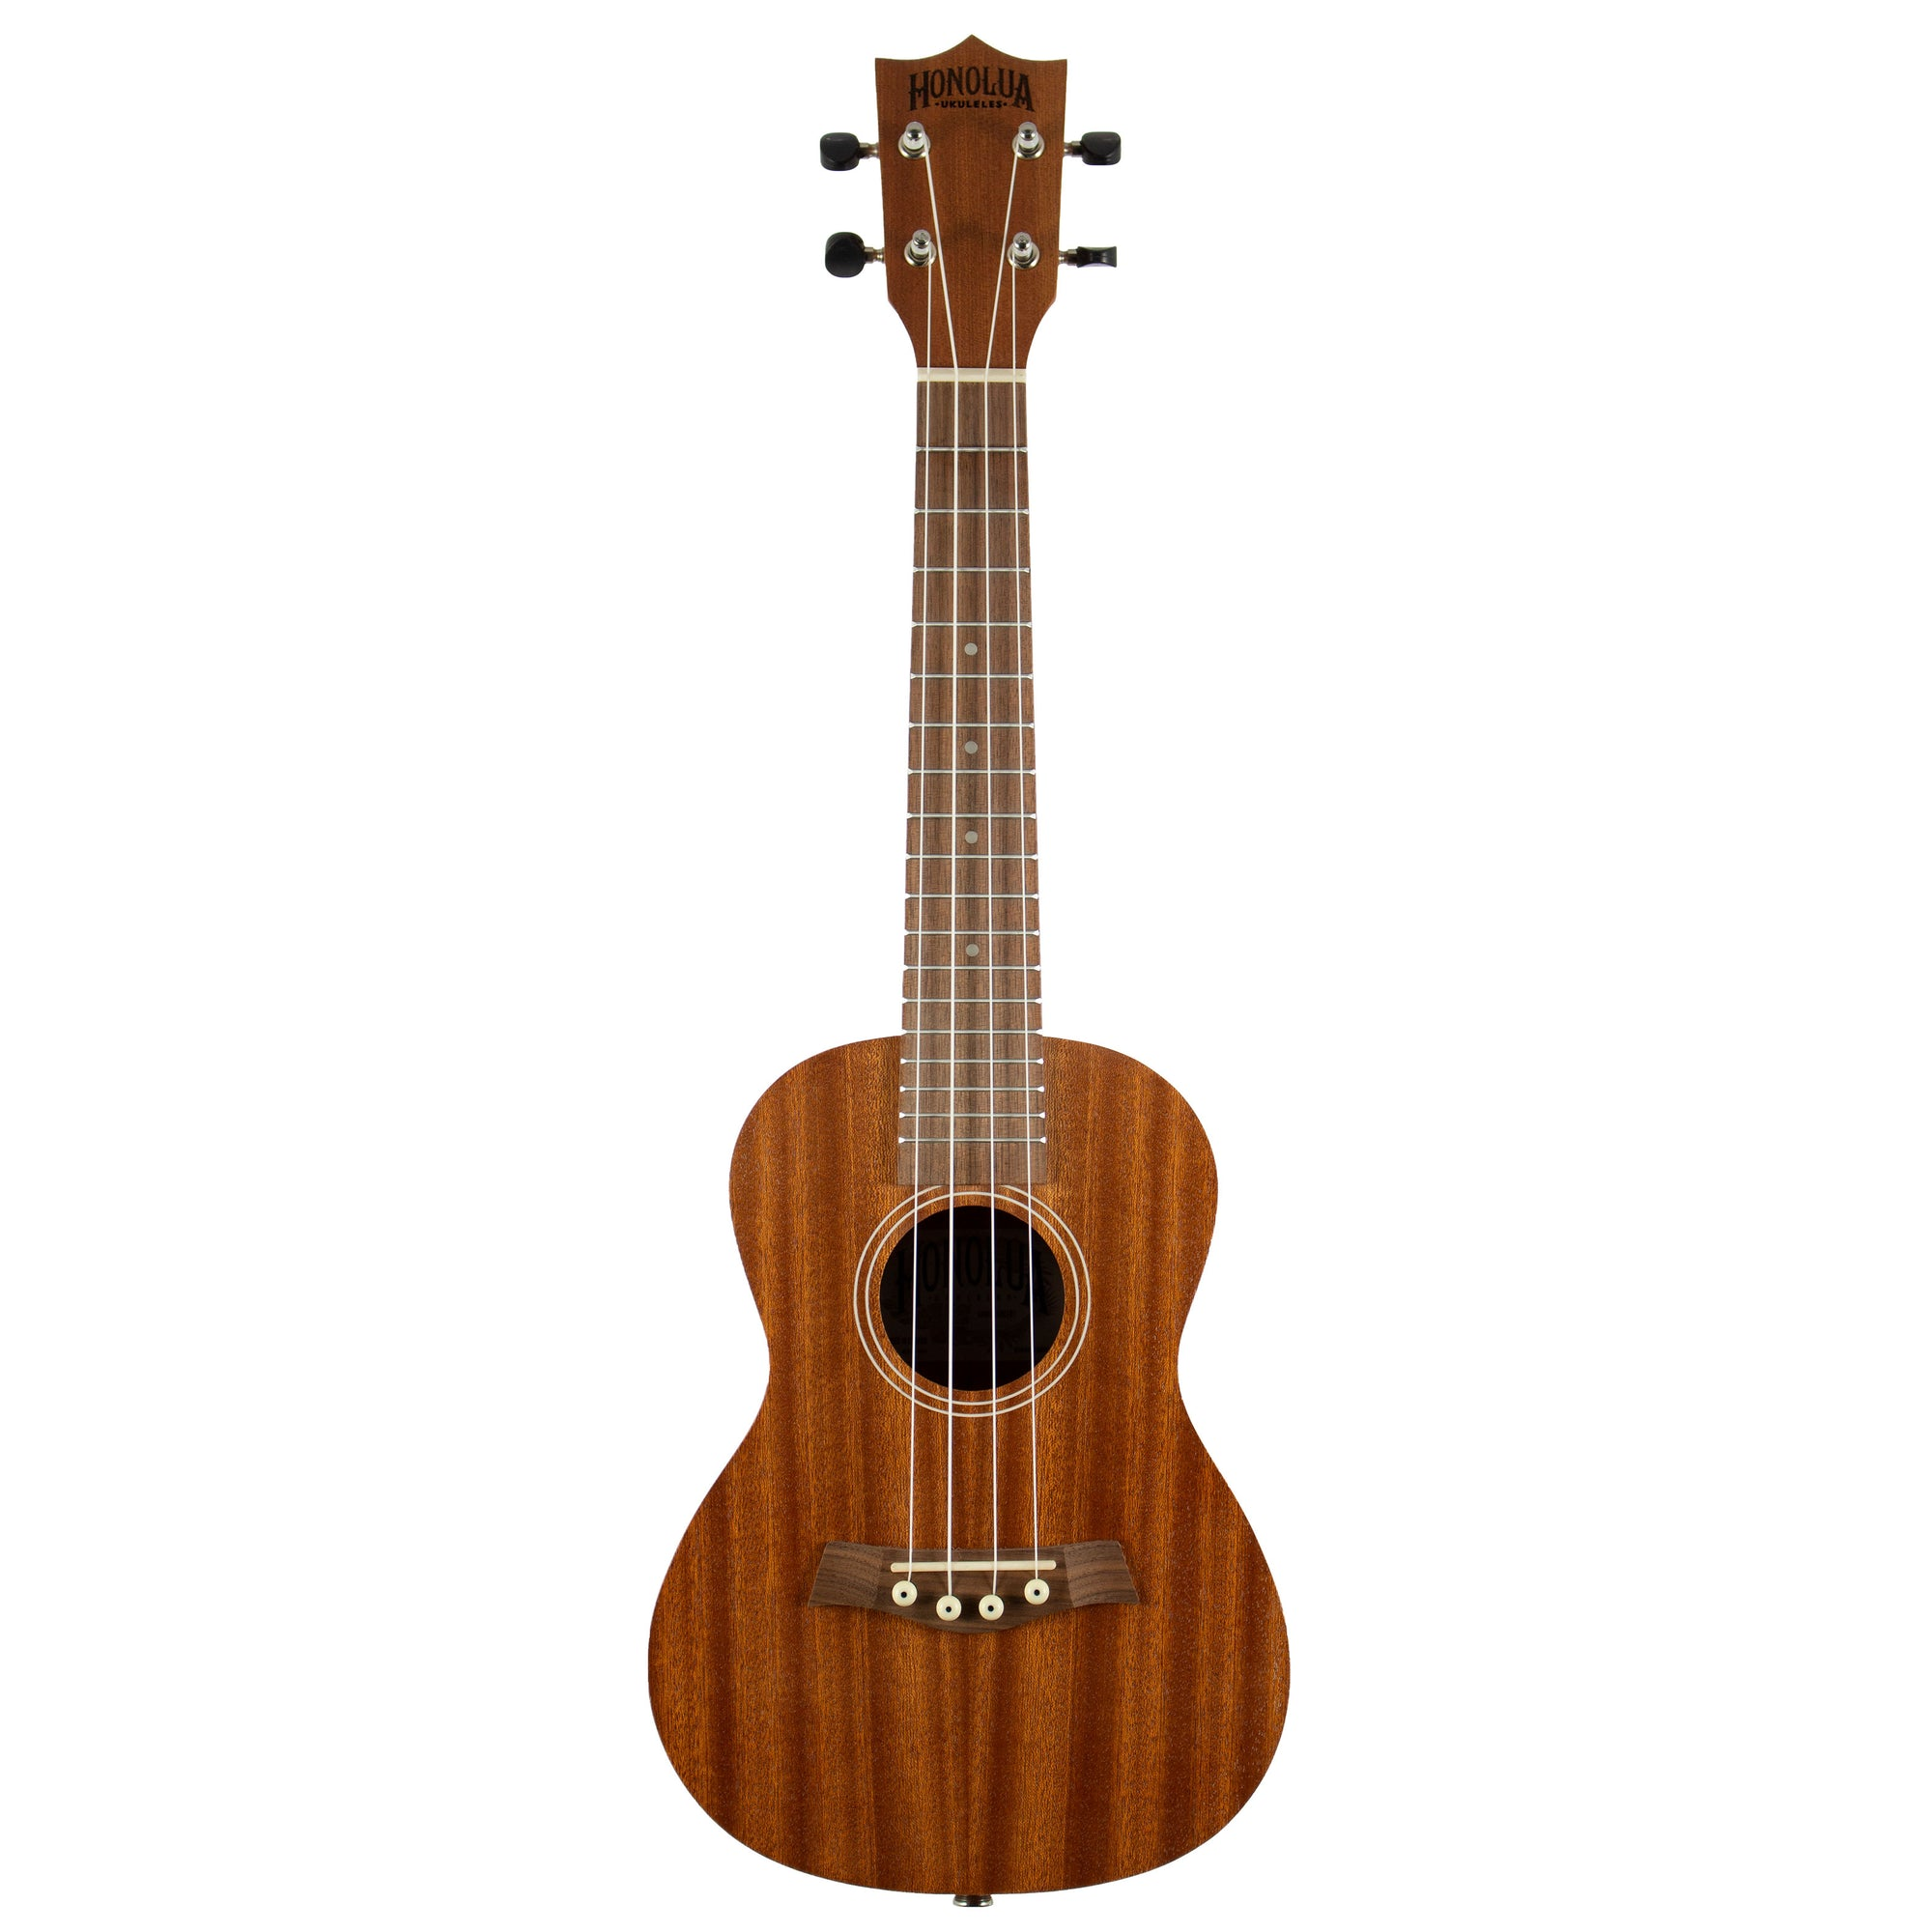 Honolua Honu Concert Ukulele HO-21 w/Bag